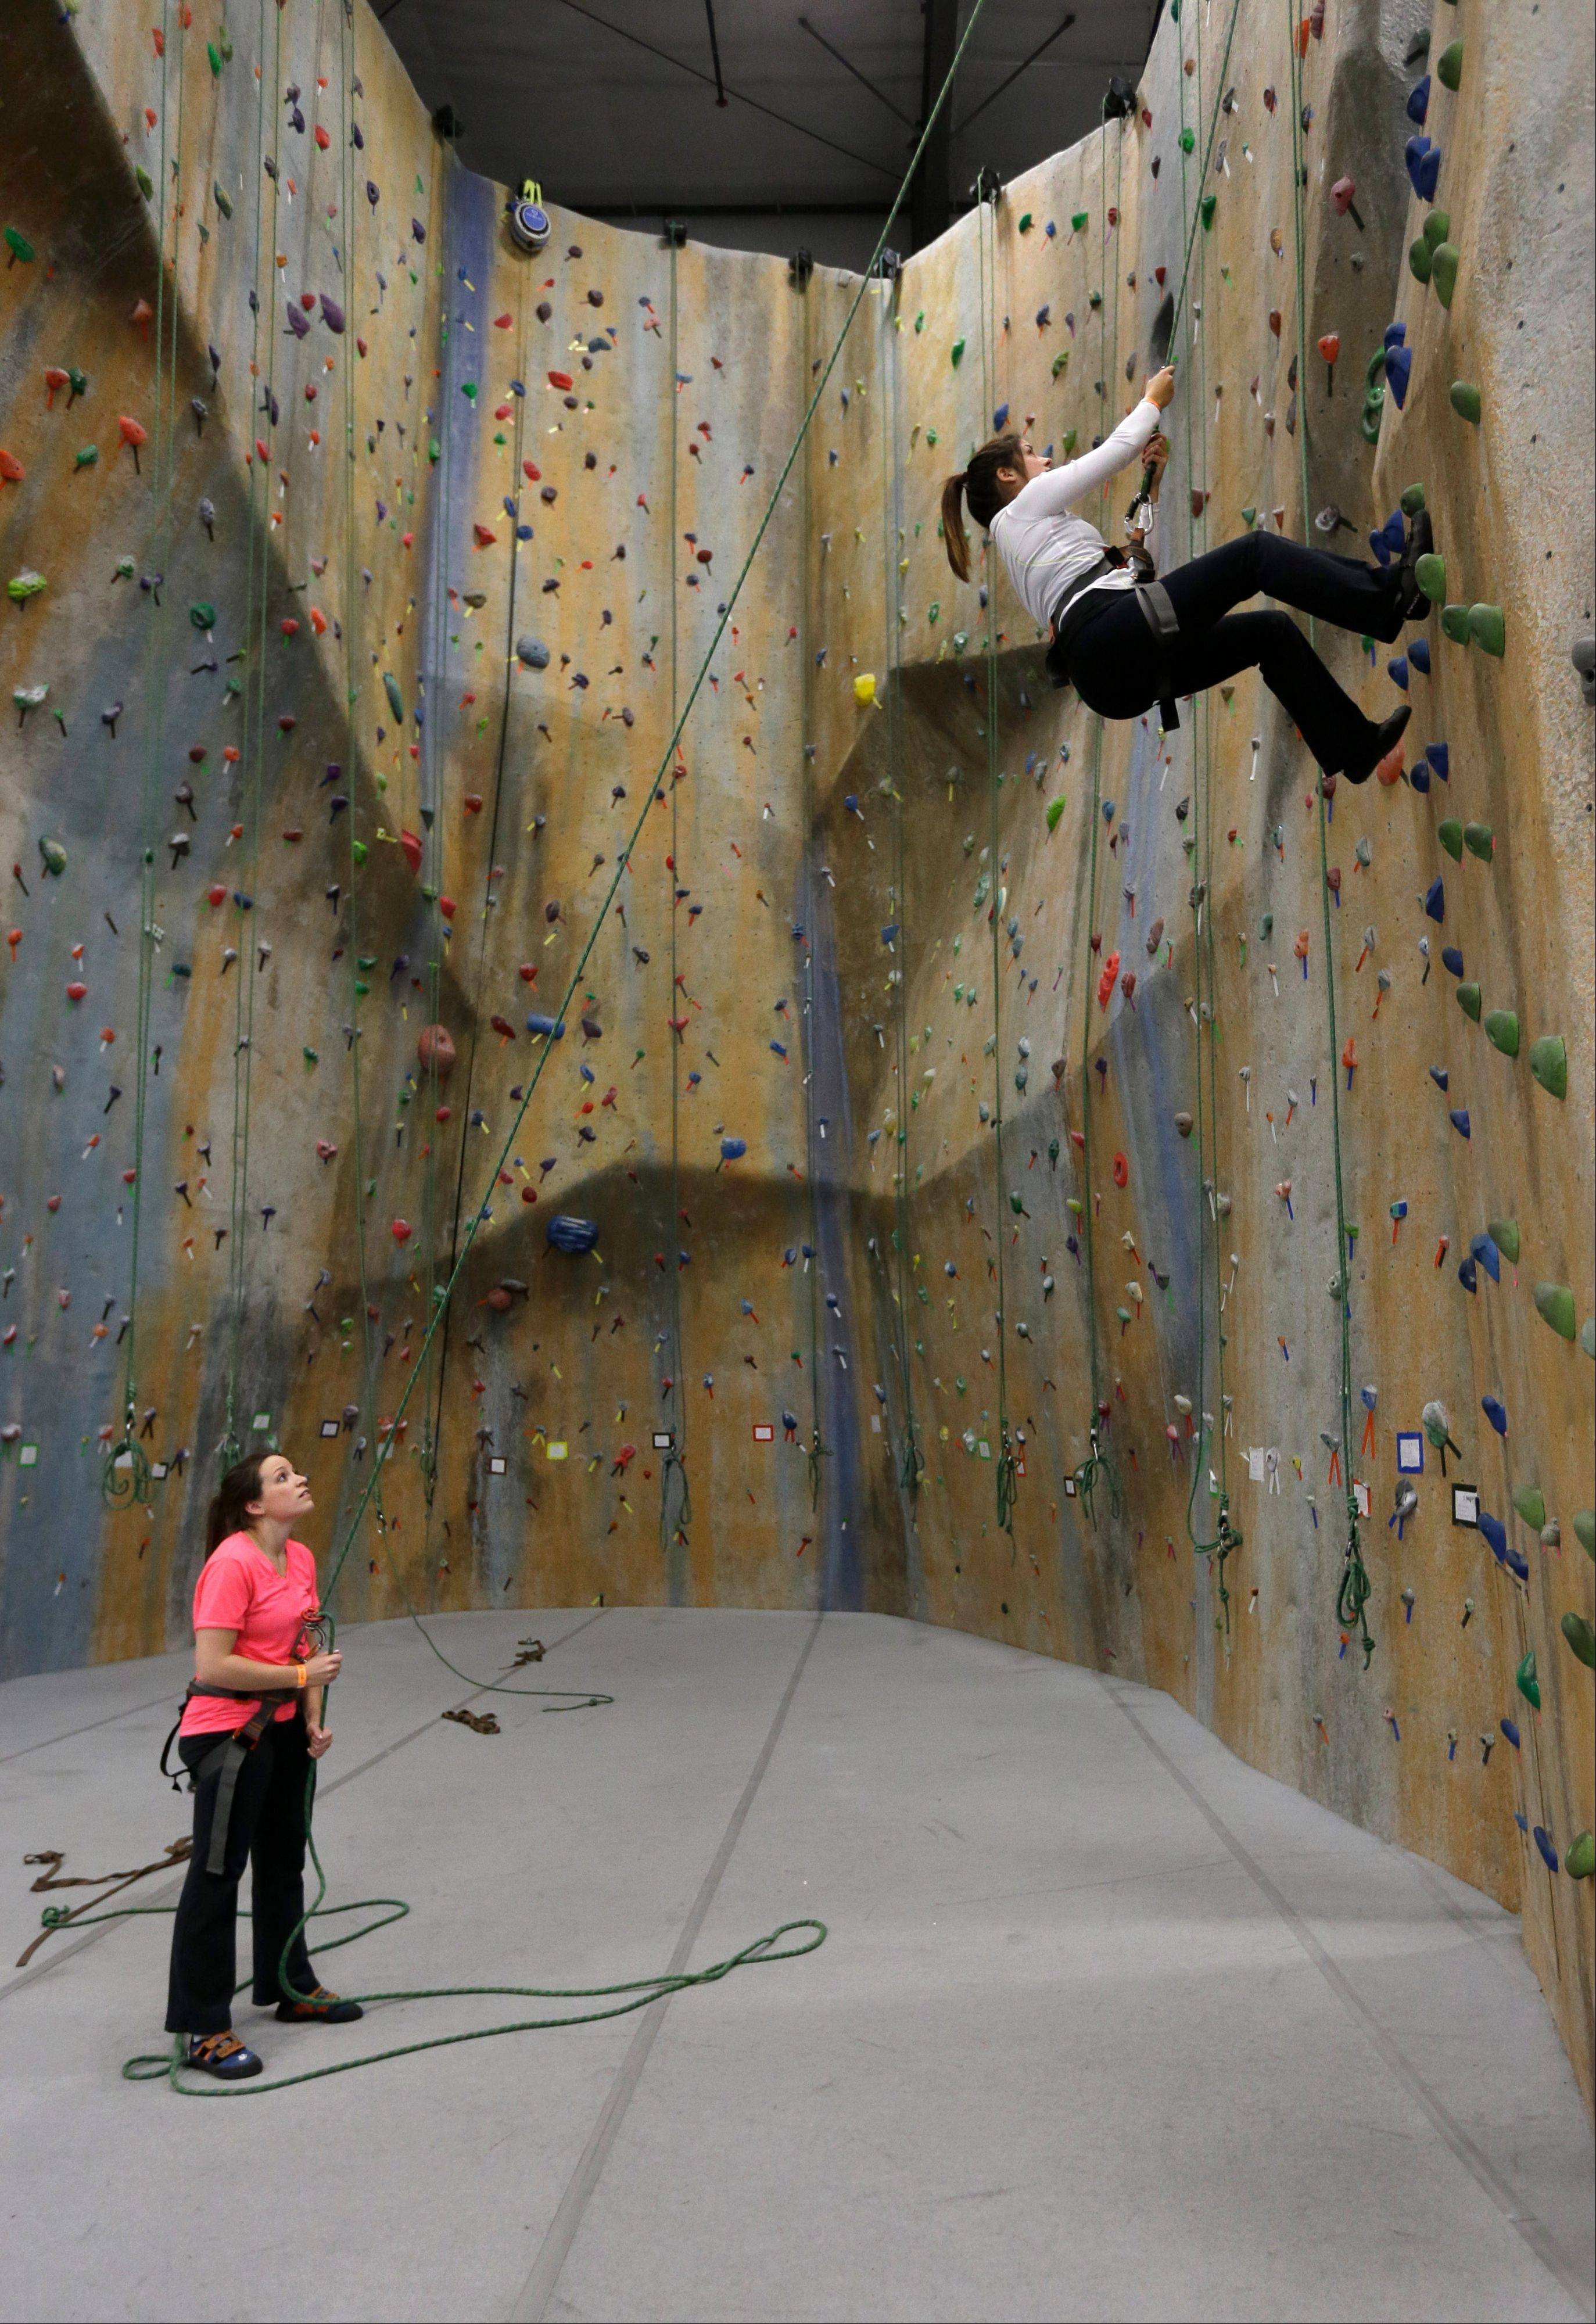 Ashley Van Patten, left, belays for Kelly Harrigan at The Edge Halfmoon indoor climbing center in Halfmoon, N.Y.